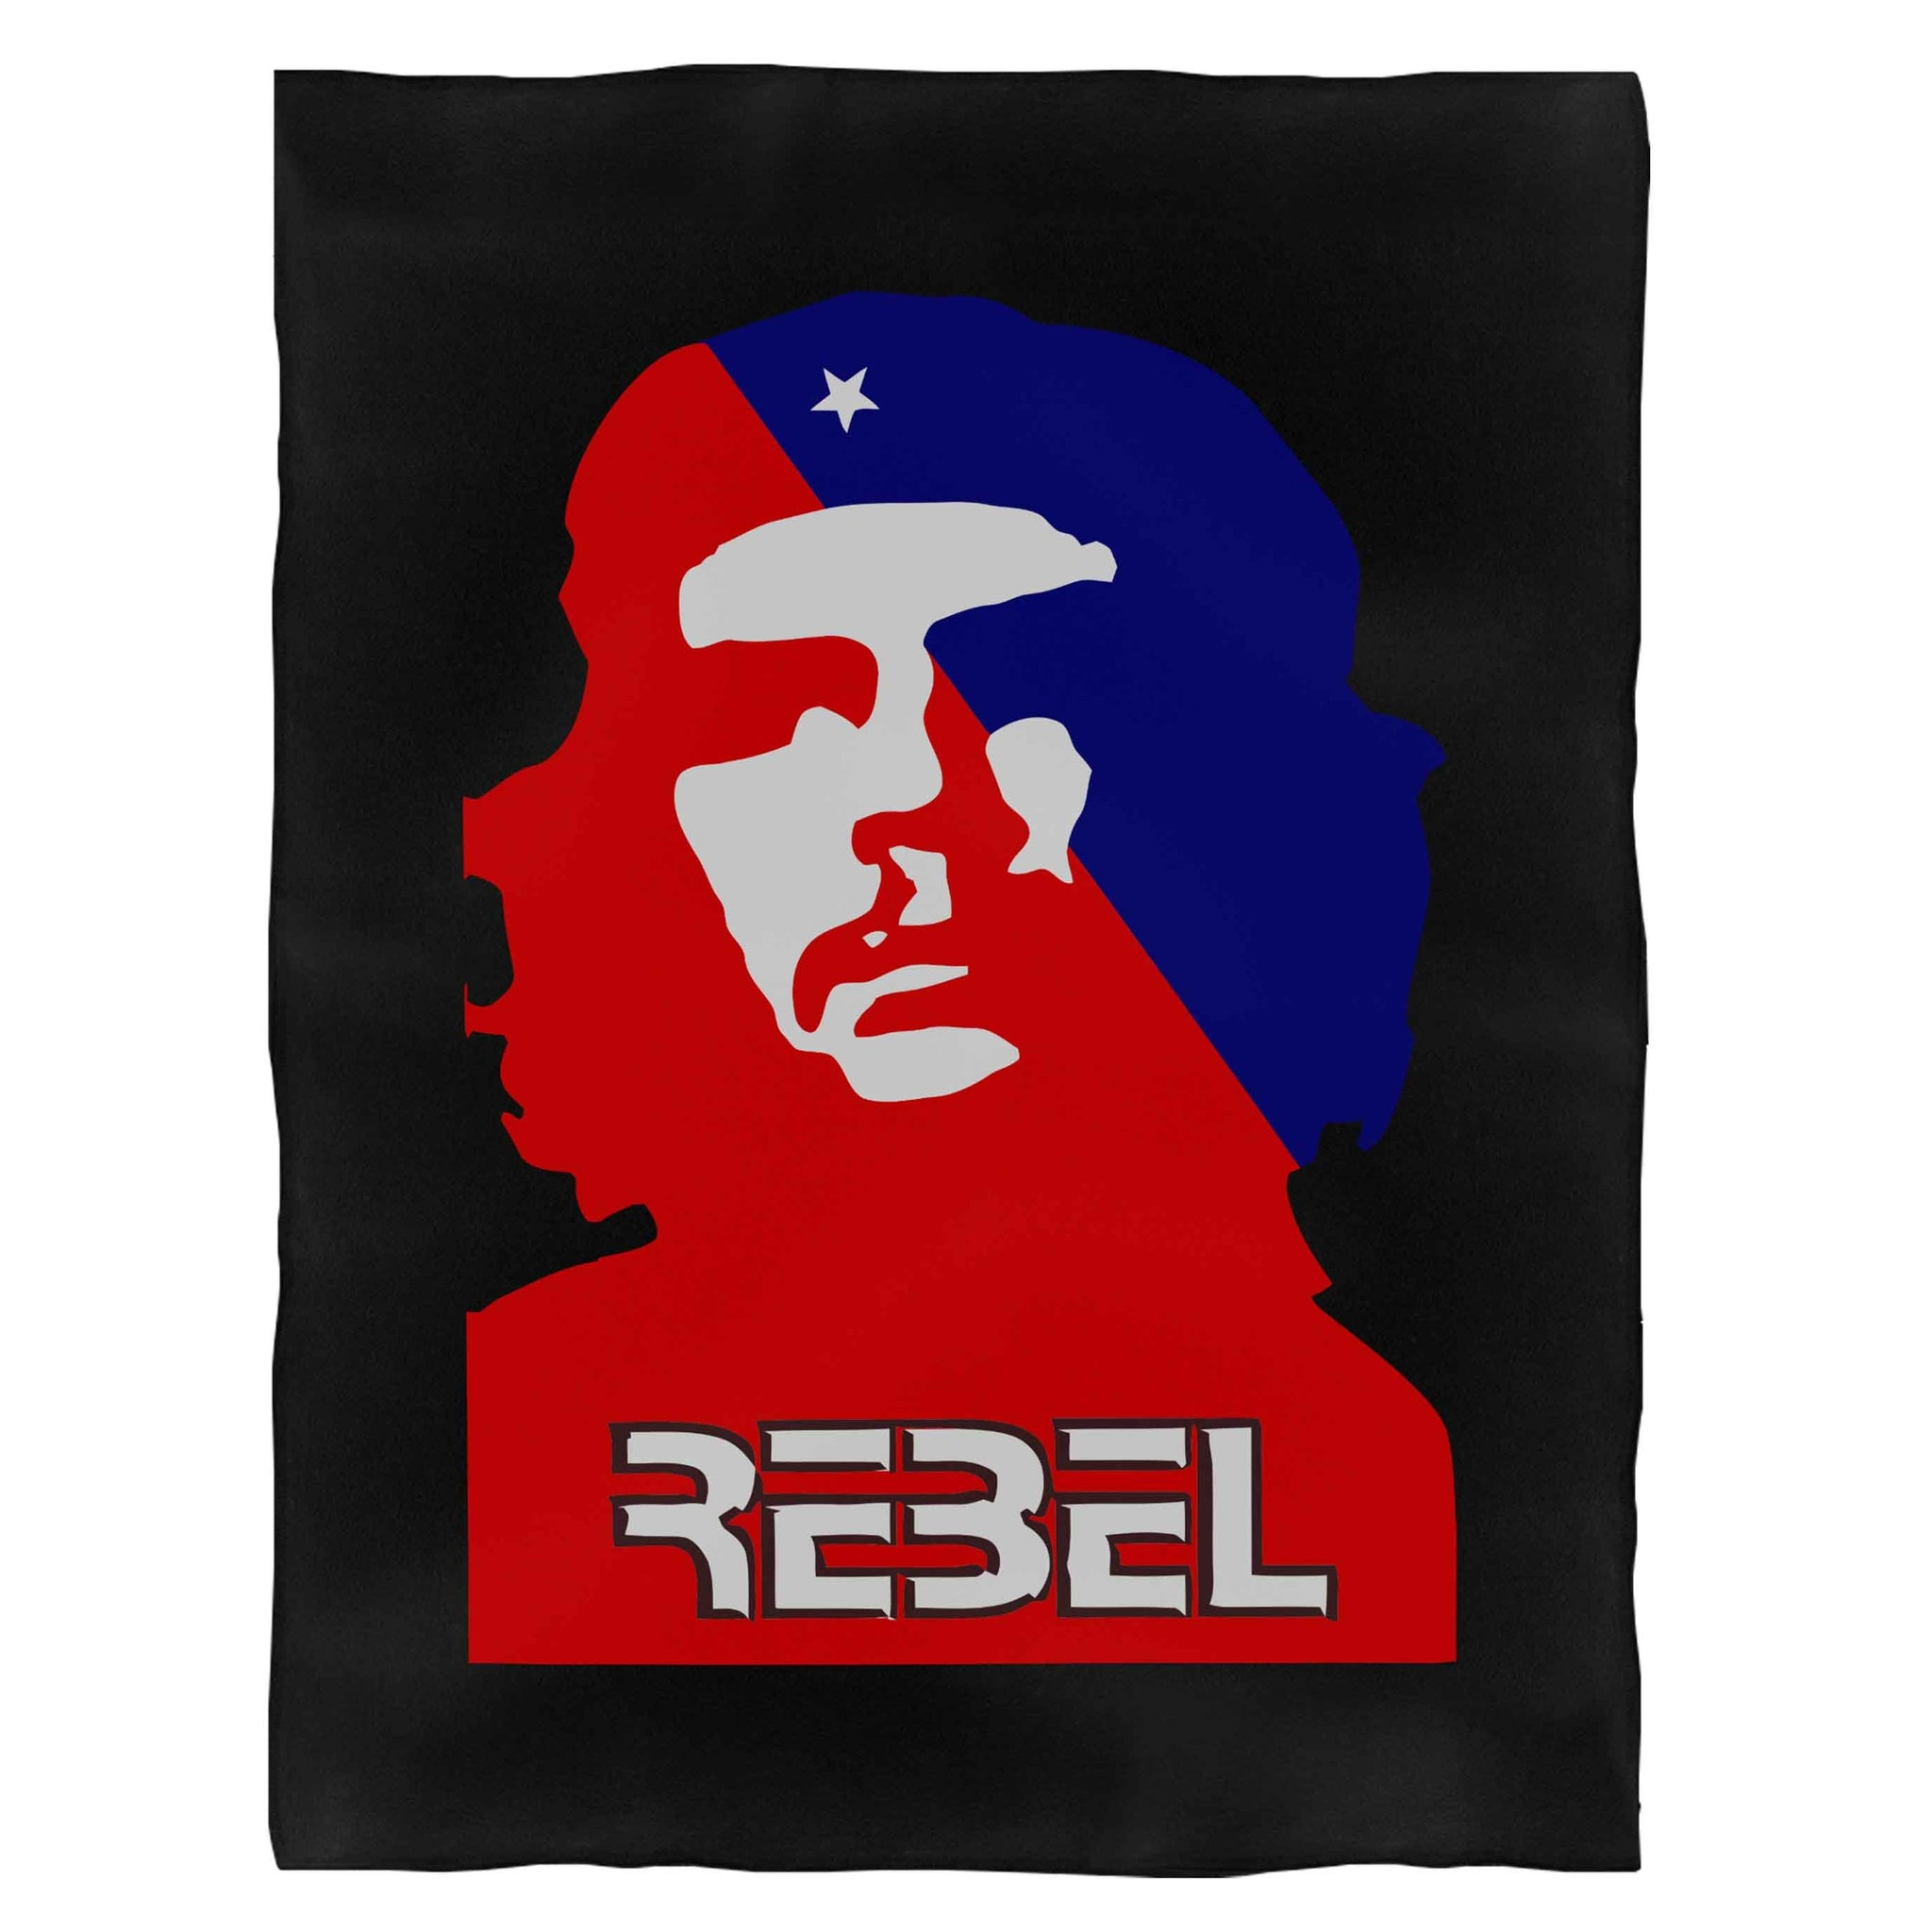 Che Guevara Leadership Analysis Fleece Blanket